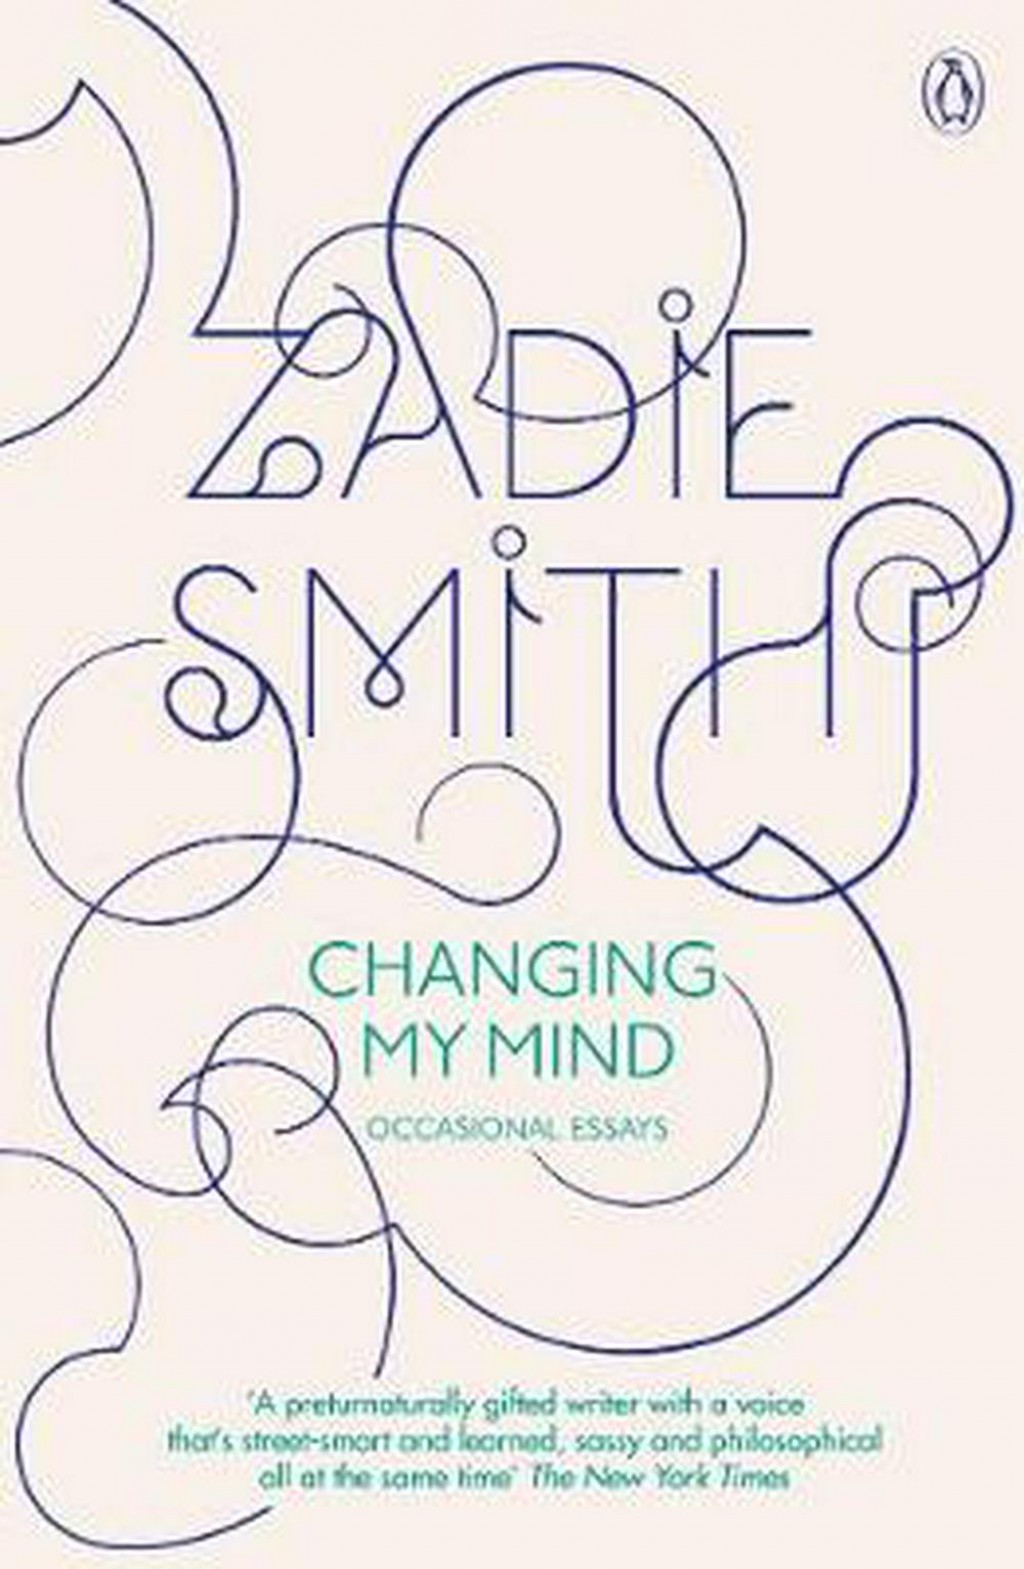 003 Essay Example Changing My Mind Occasional Essays Striking Pdf By Zadie Smith Large